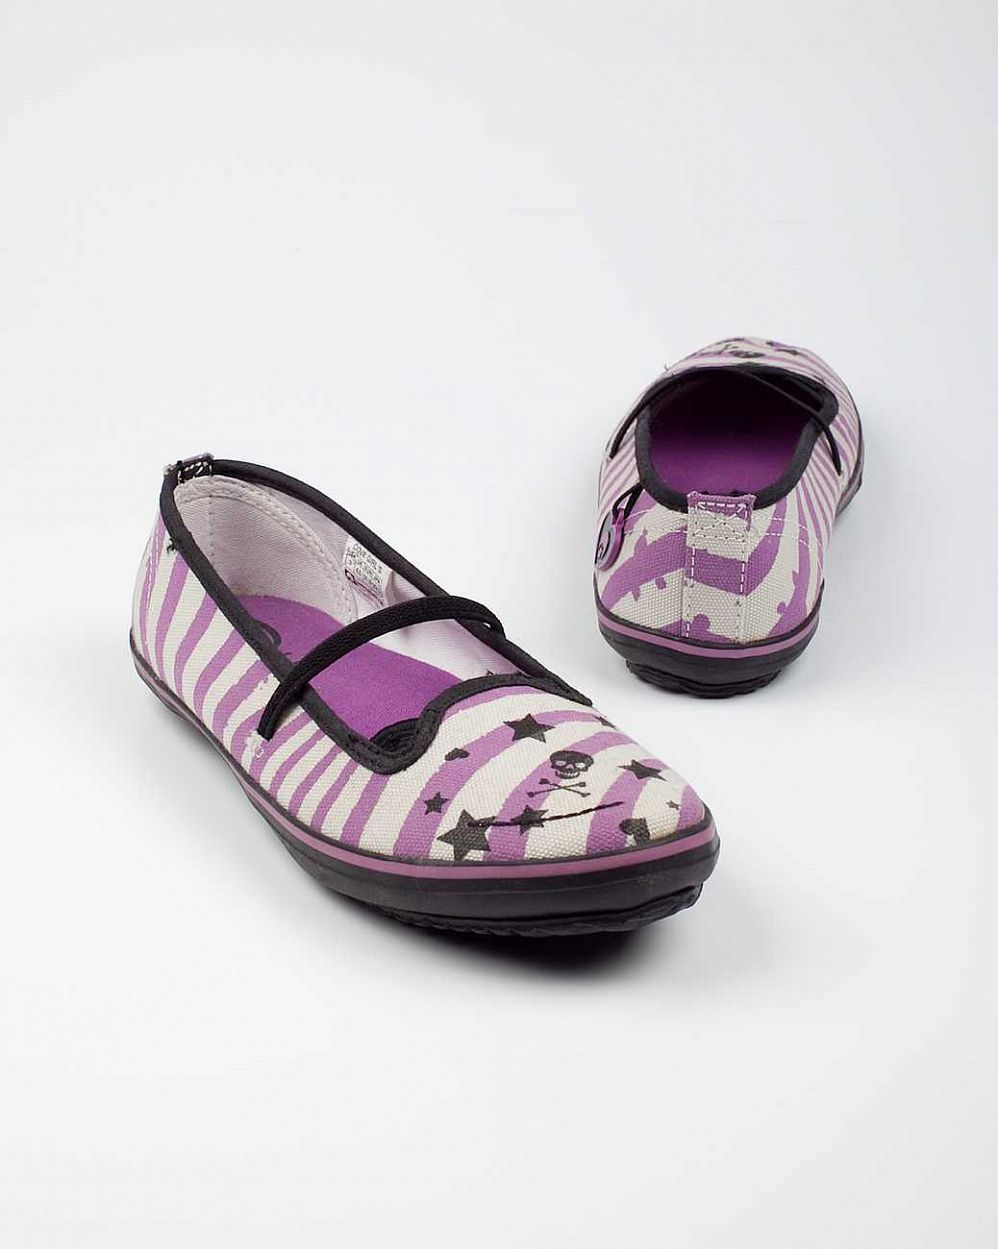 купить Слипоны Osiris Cove Girls W'S purple dazed freddi c в Москве